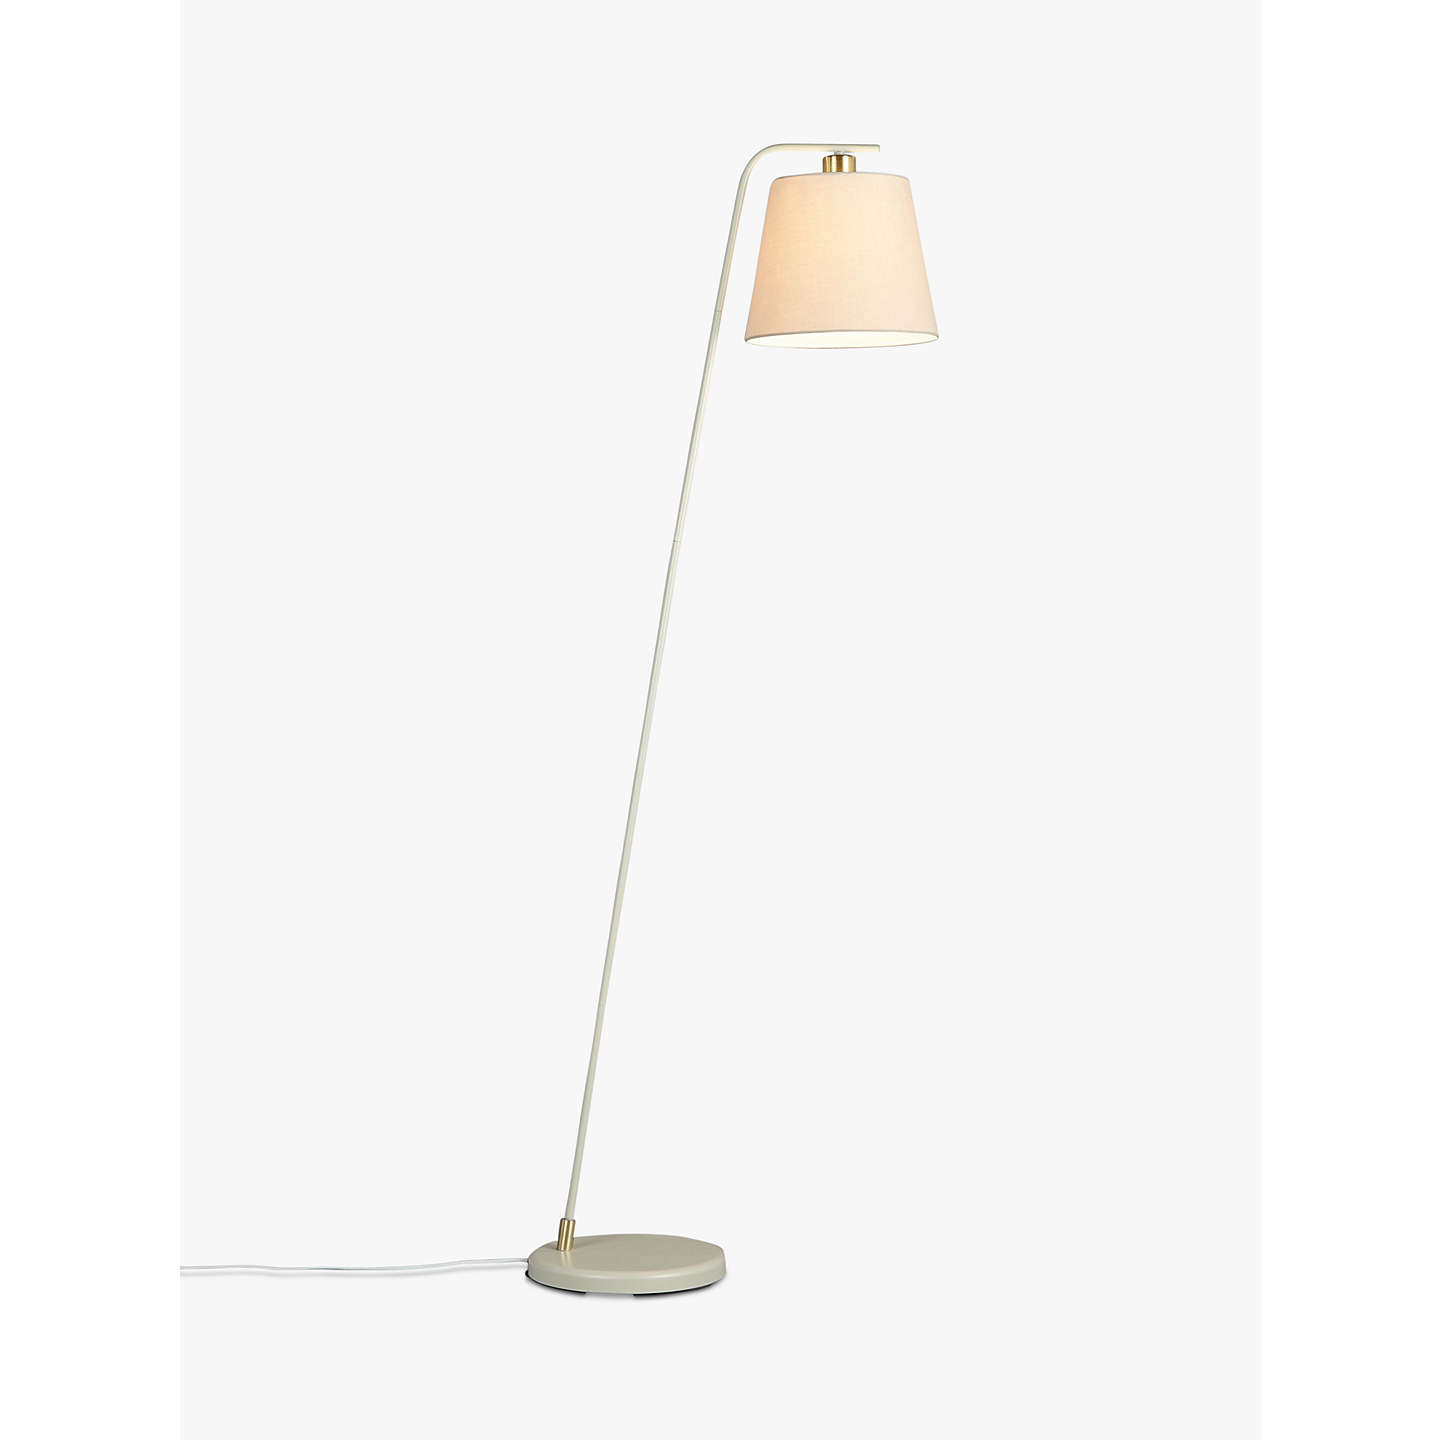 House by john lewis harry floor lamp at john lewis buyhouse by john lewis harry floor lamp putty online at johnlewis mozeypictures Gallery